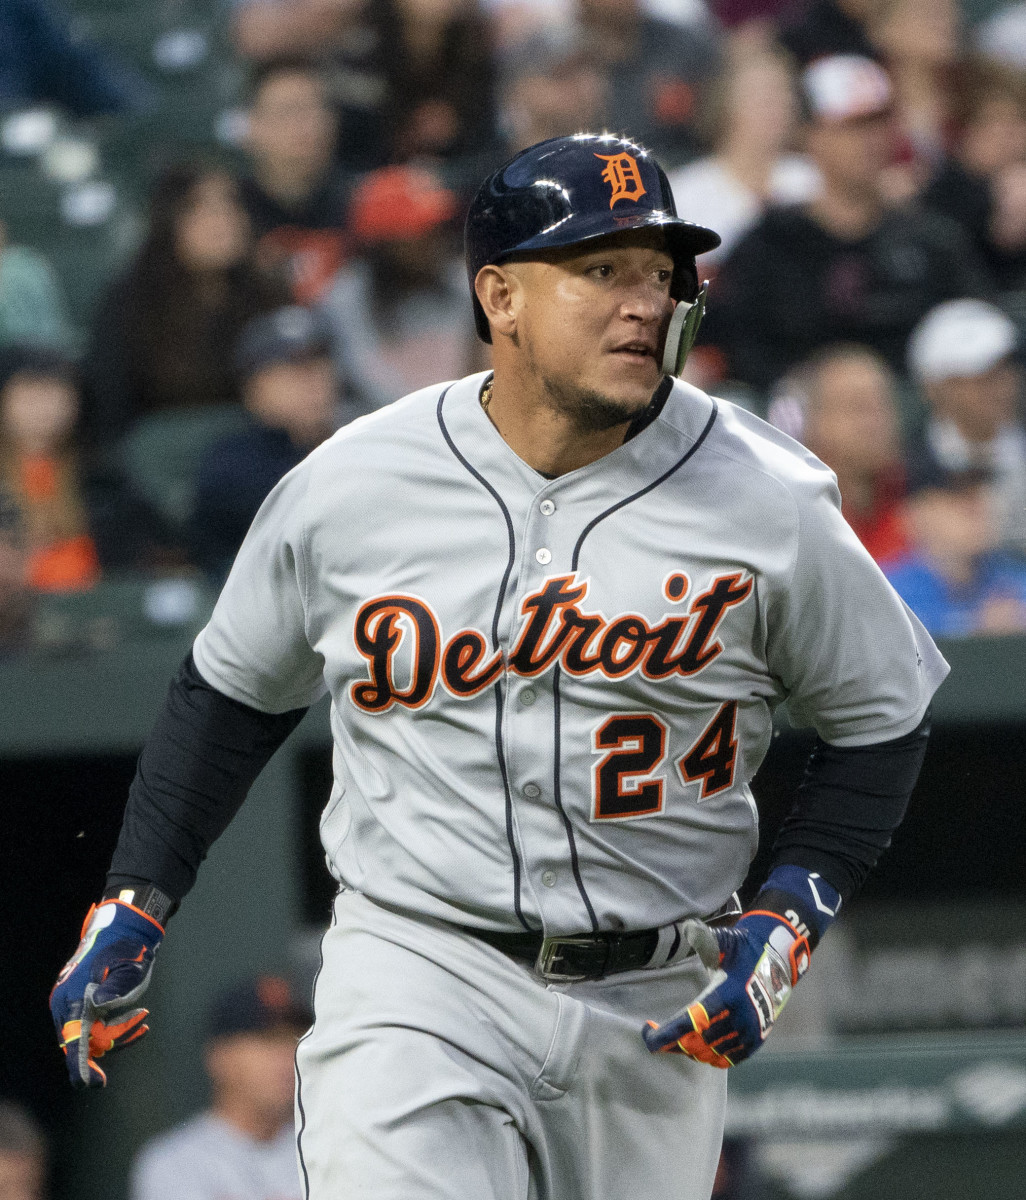 Miguel Cabrera was a hero on the way to the World Series as a rookie, but made the last out in his second World Series appearance.